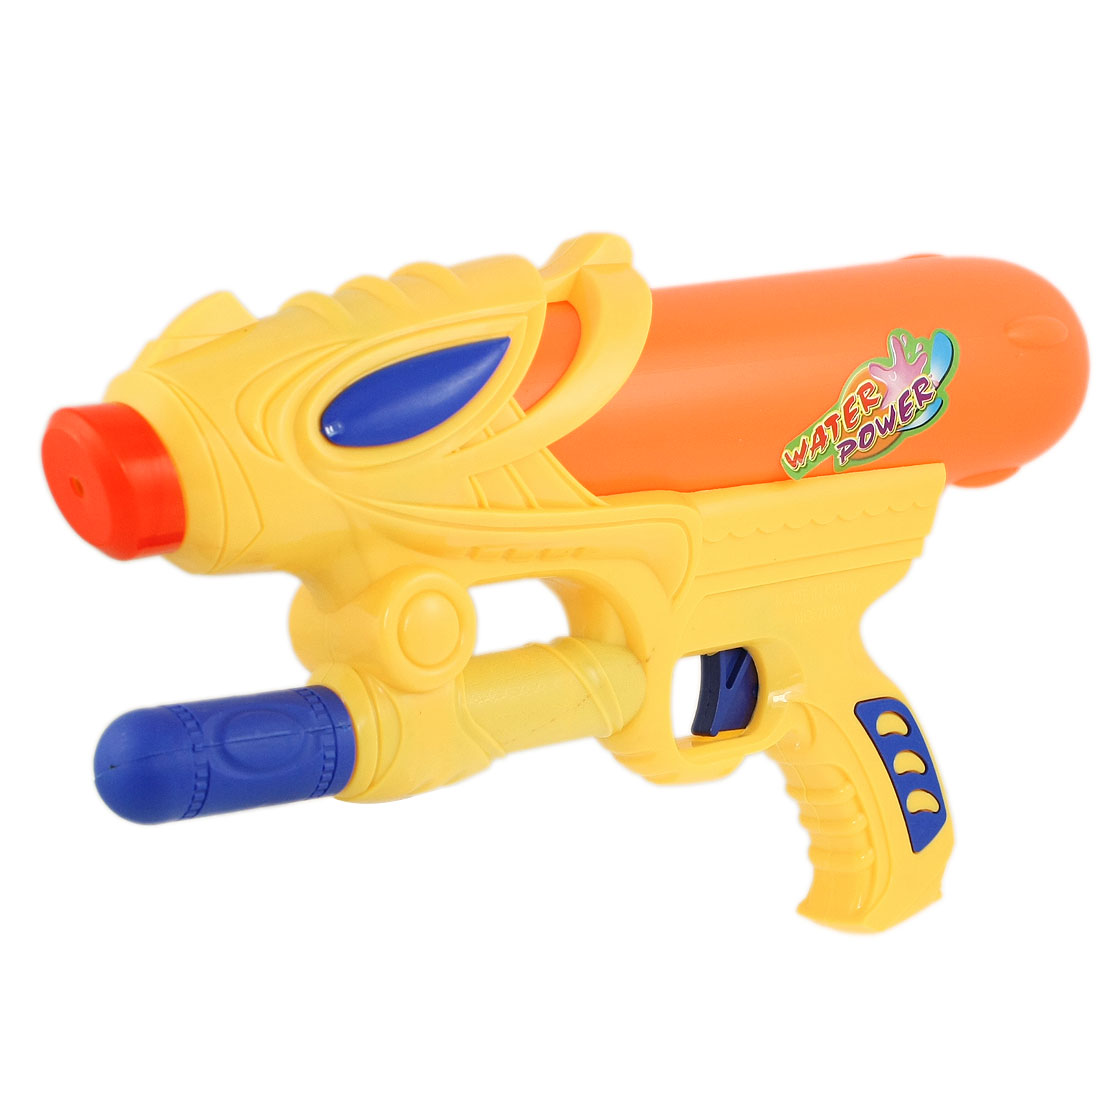 Children Yellow Orange Plastic Hand Pump Pressure Water Gun Fight Toy 12""